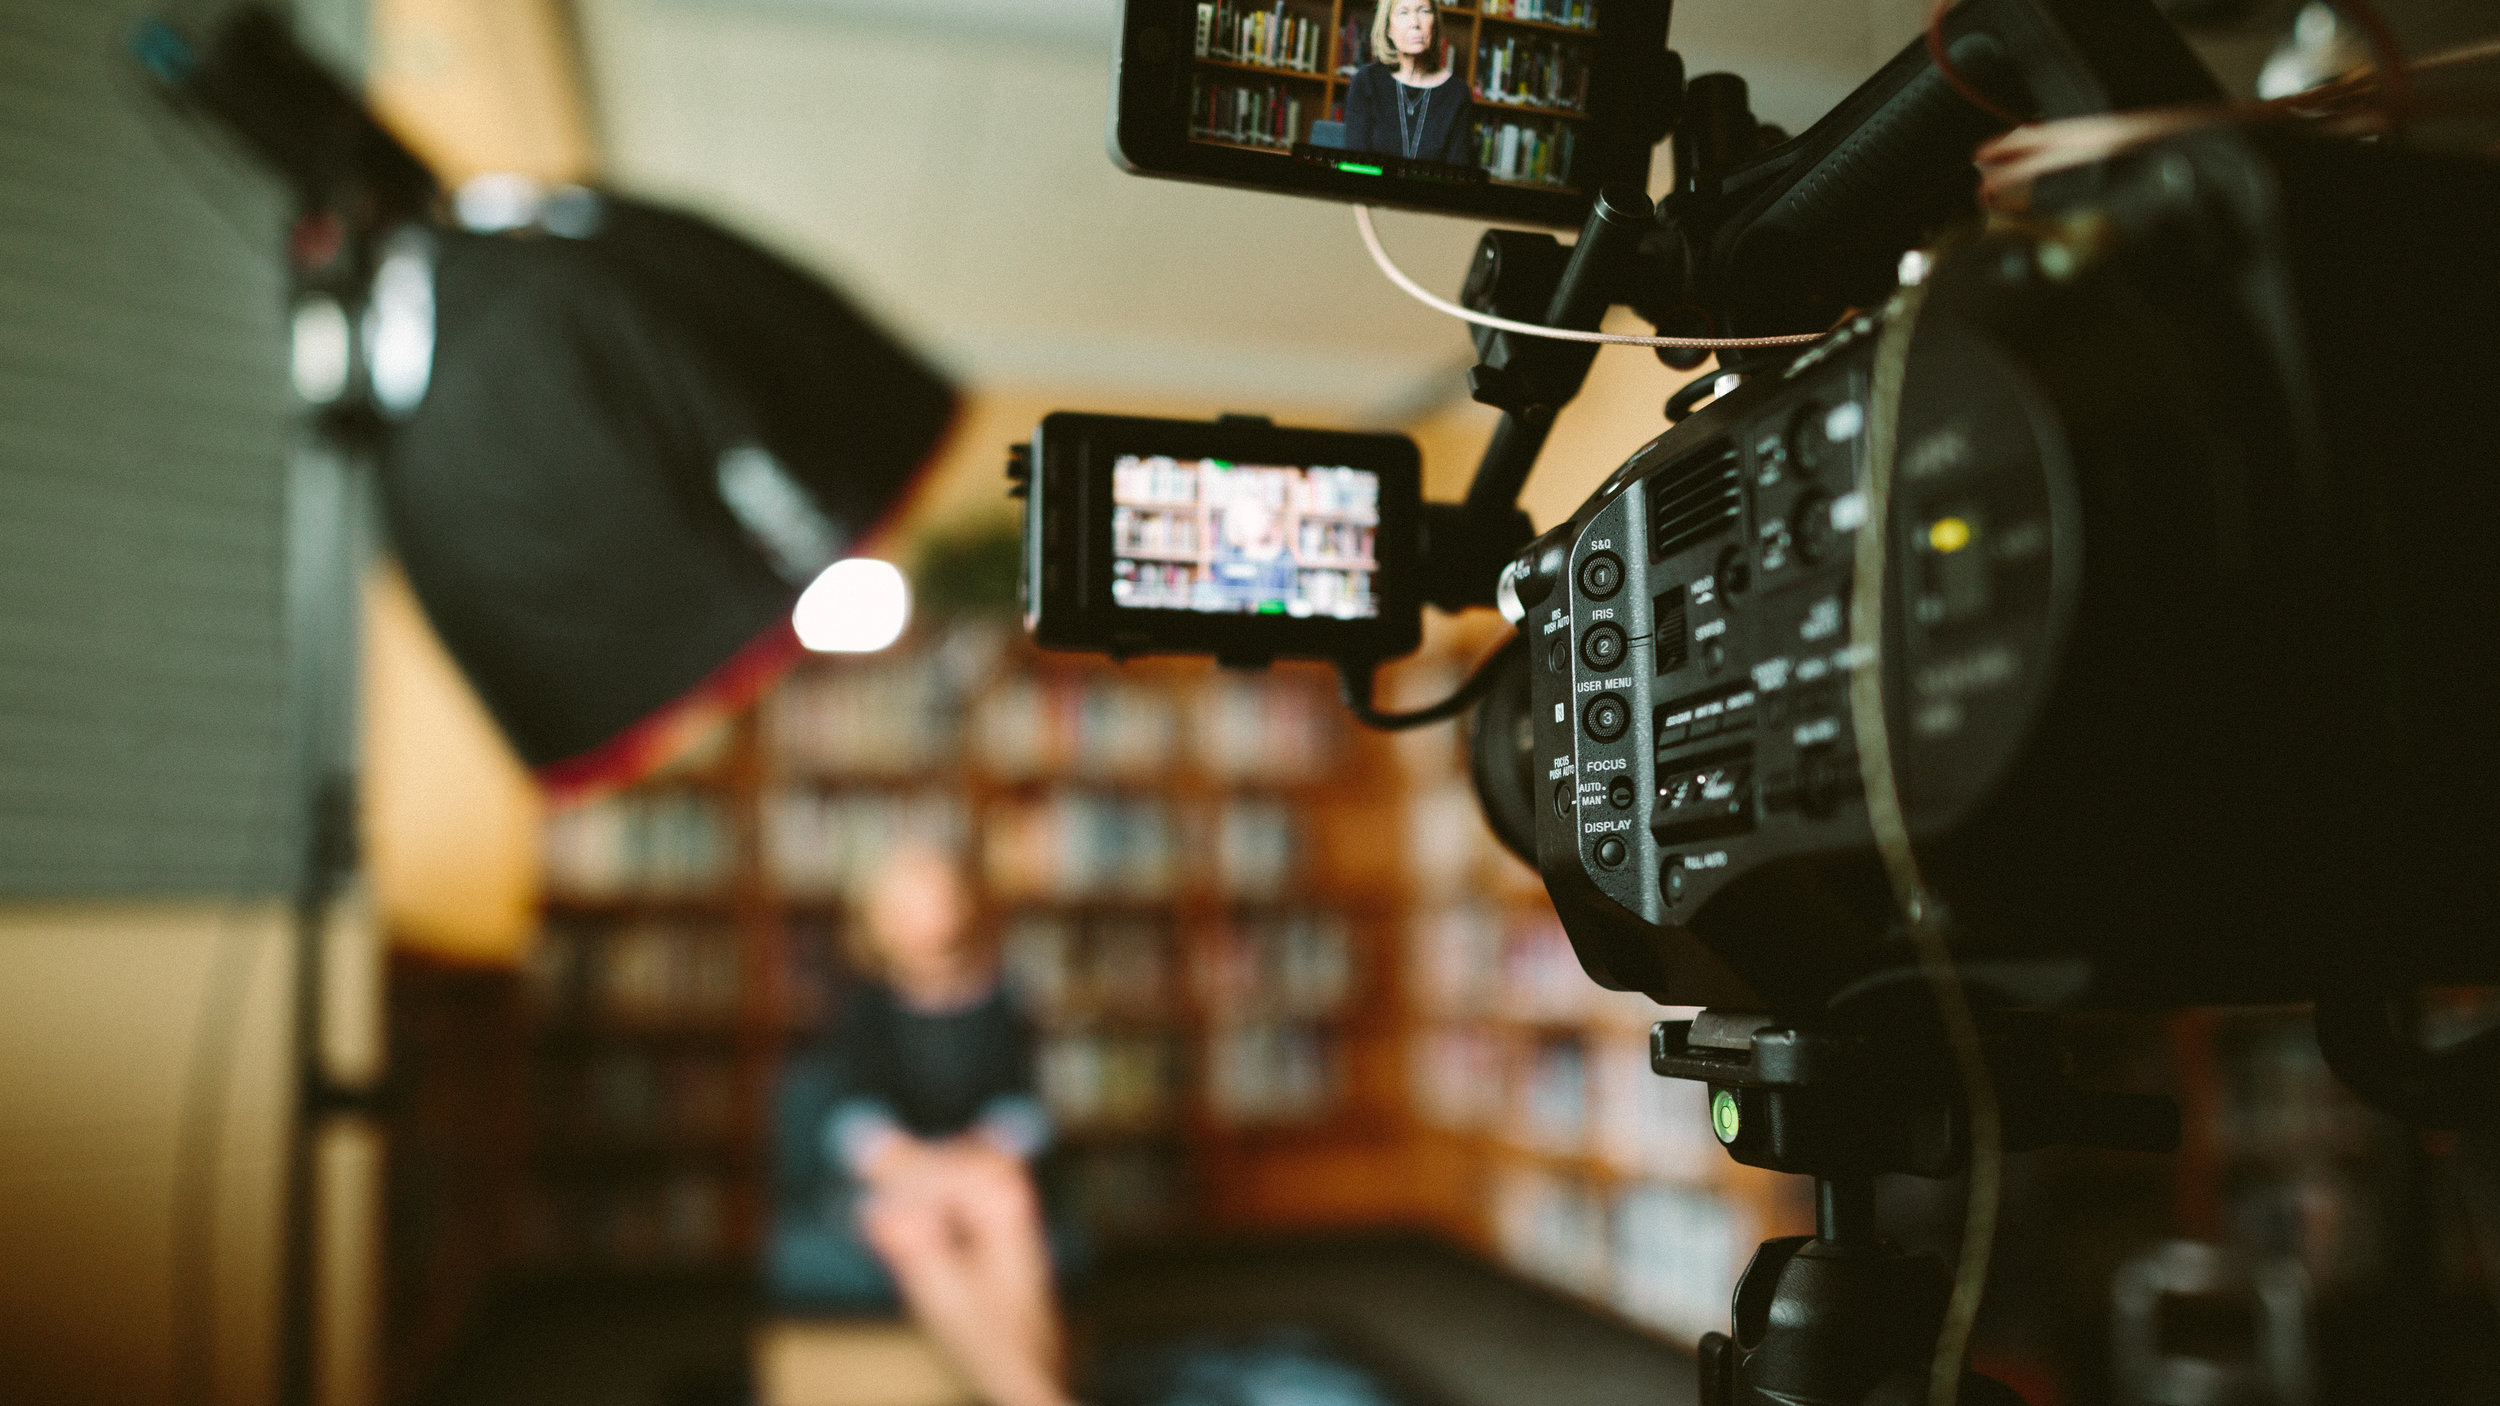 Business Story Video Production - Looking to put your business in the spotlight? Our business story video production services deliver vital information that will help build trust, credibility and get the viewer emotional about your business.